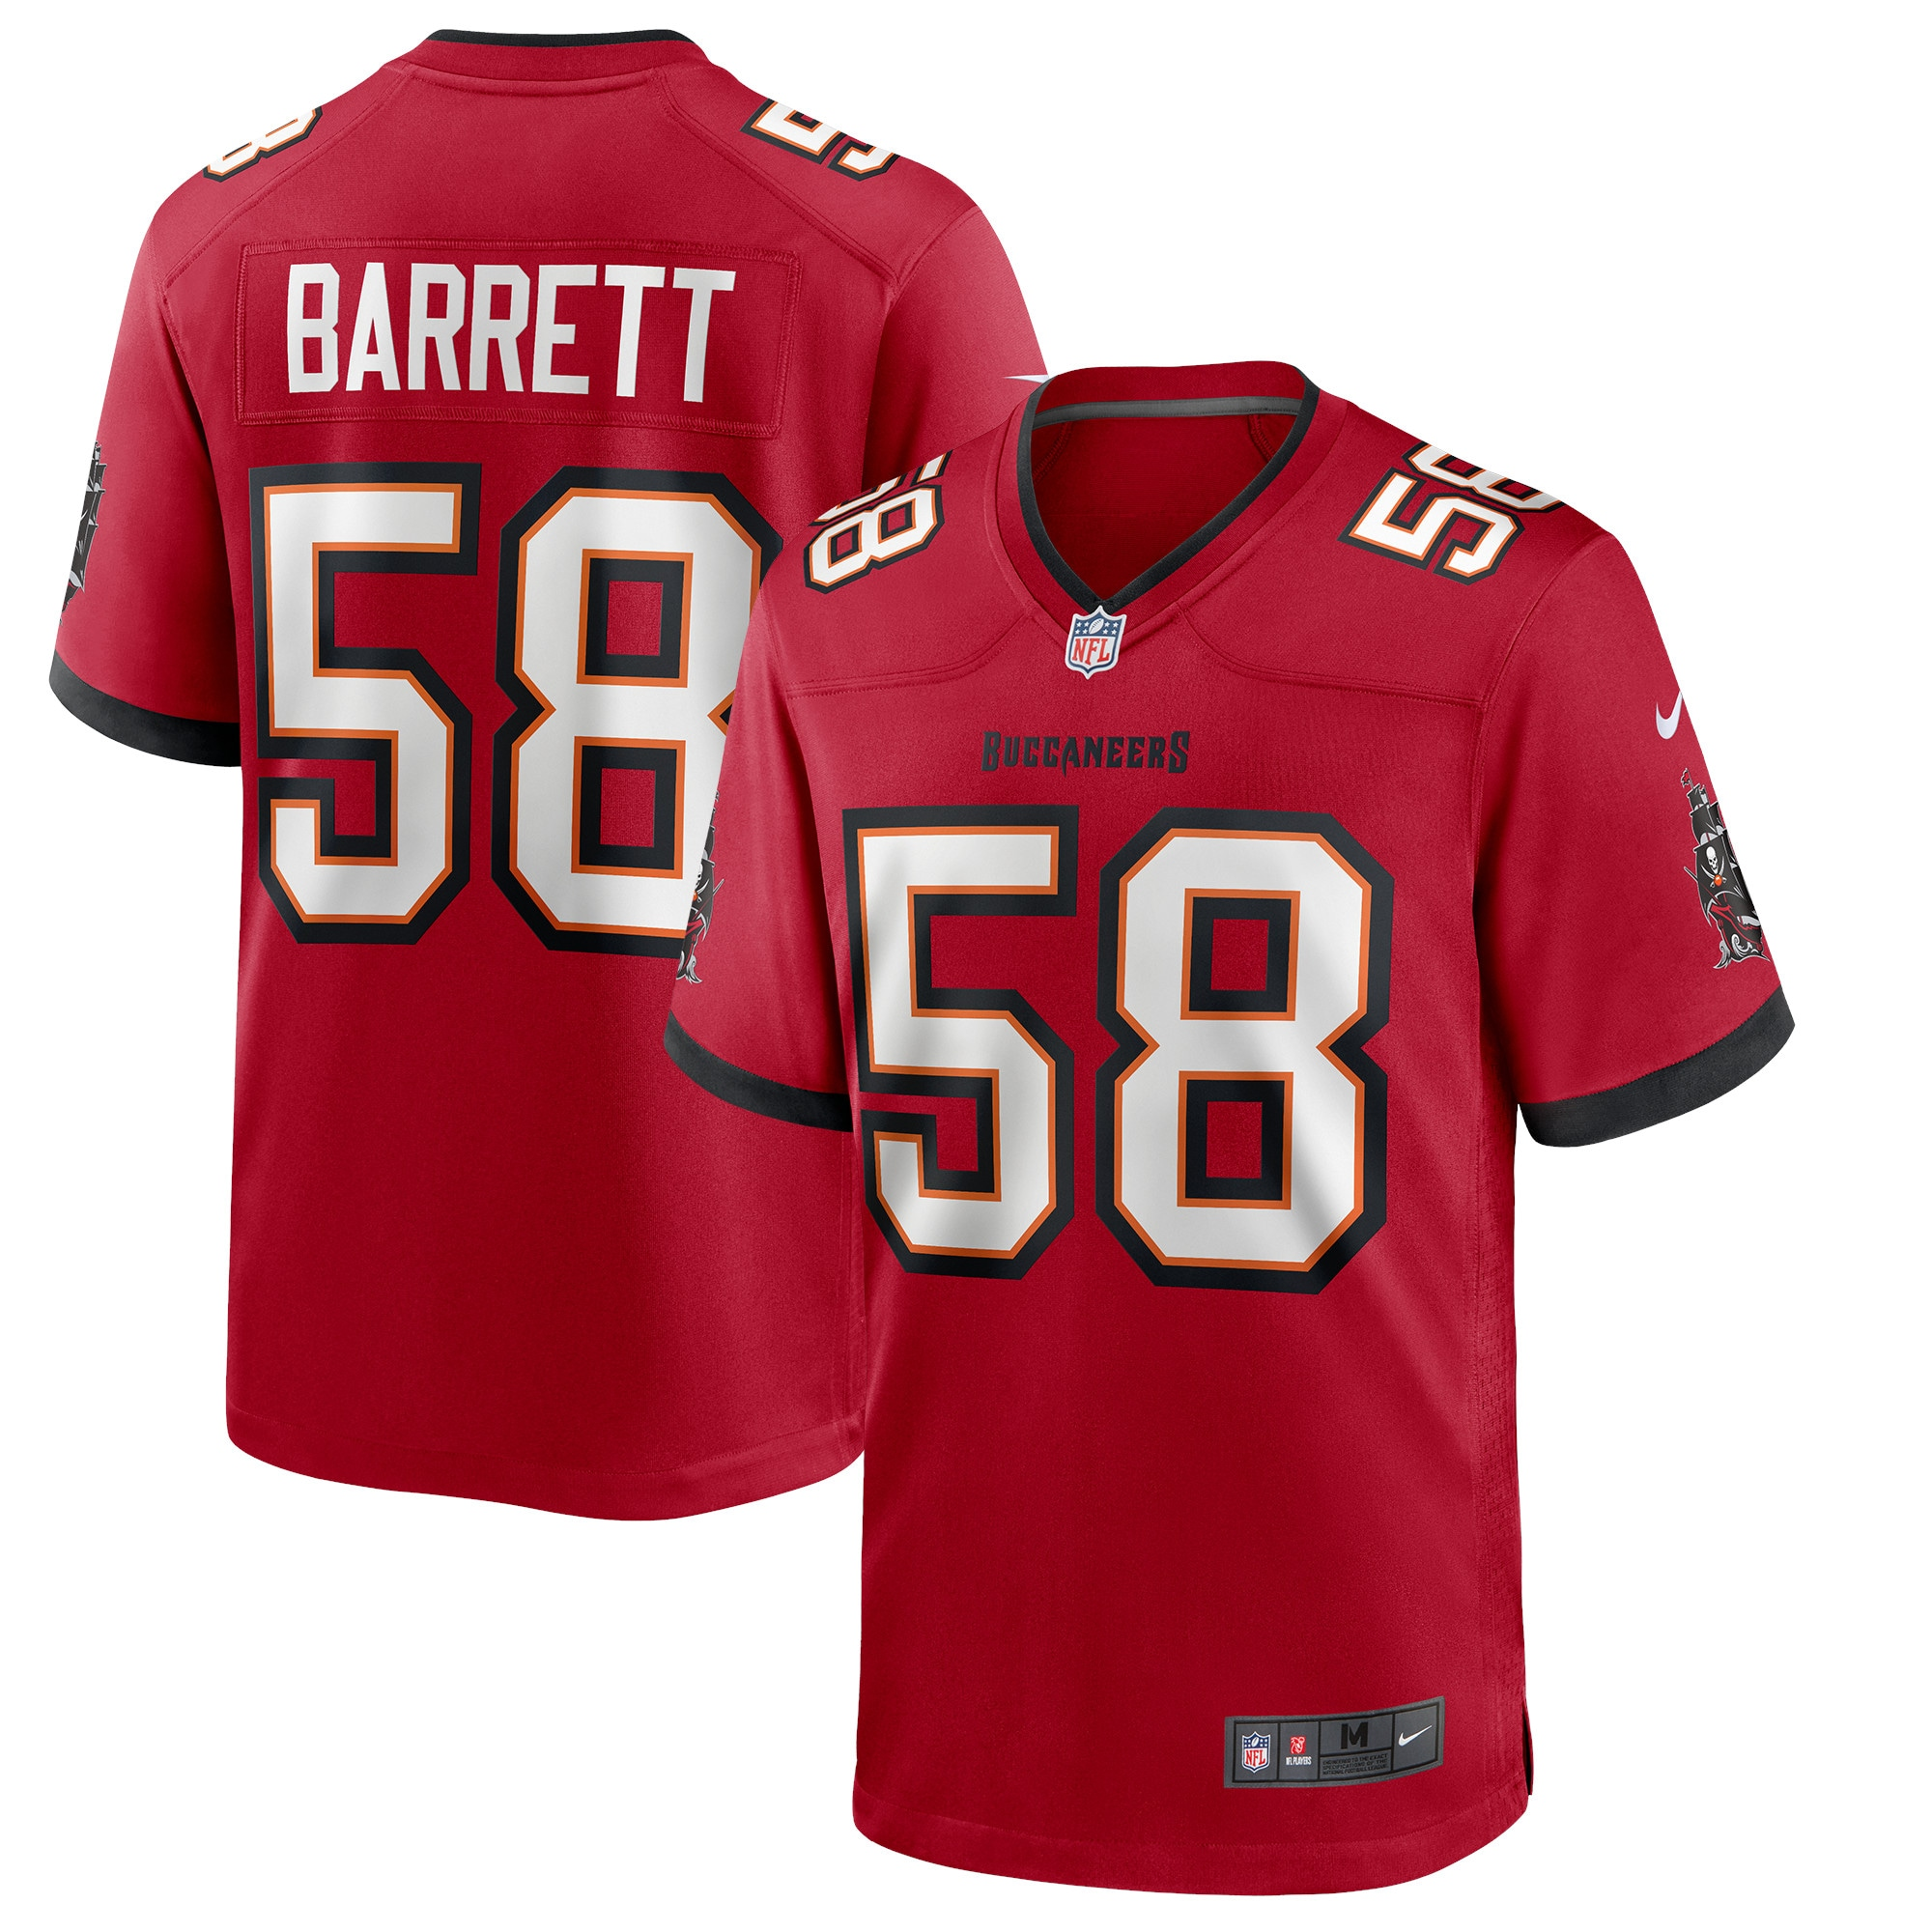 Shaquil Barrett Tampa Bay Buccaneers Nike Game Jersey - Red